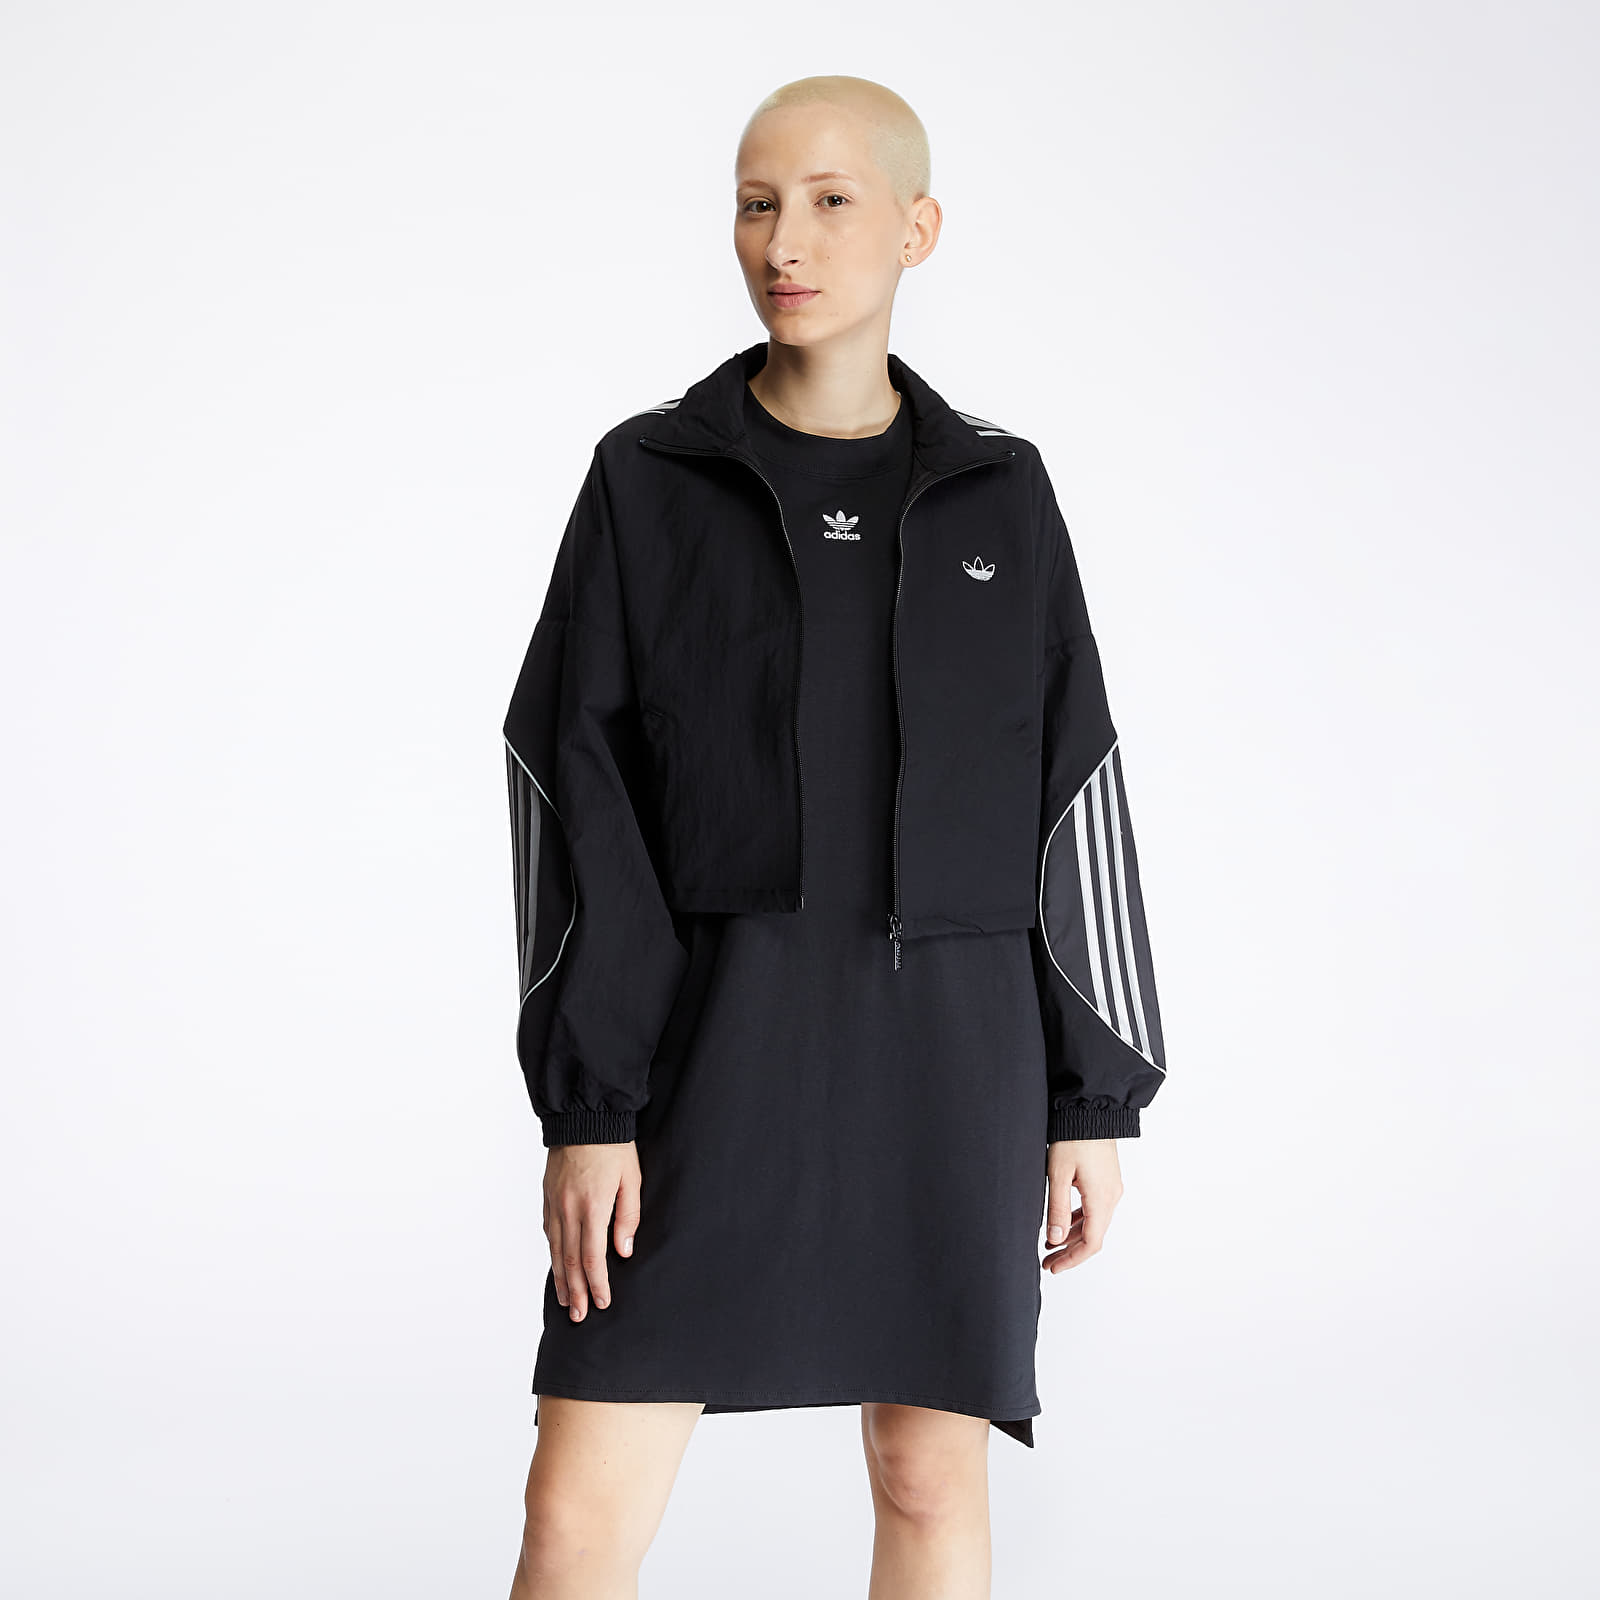 Coach Jackets adidas Track Jacket Black